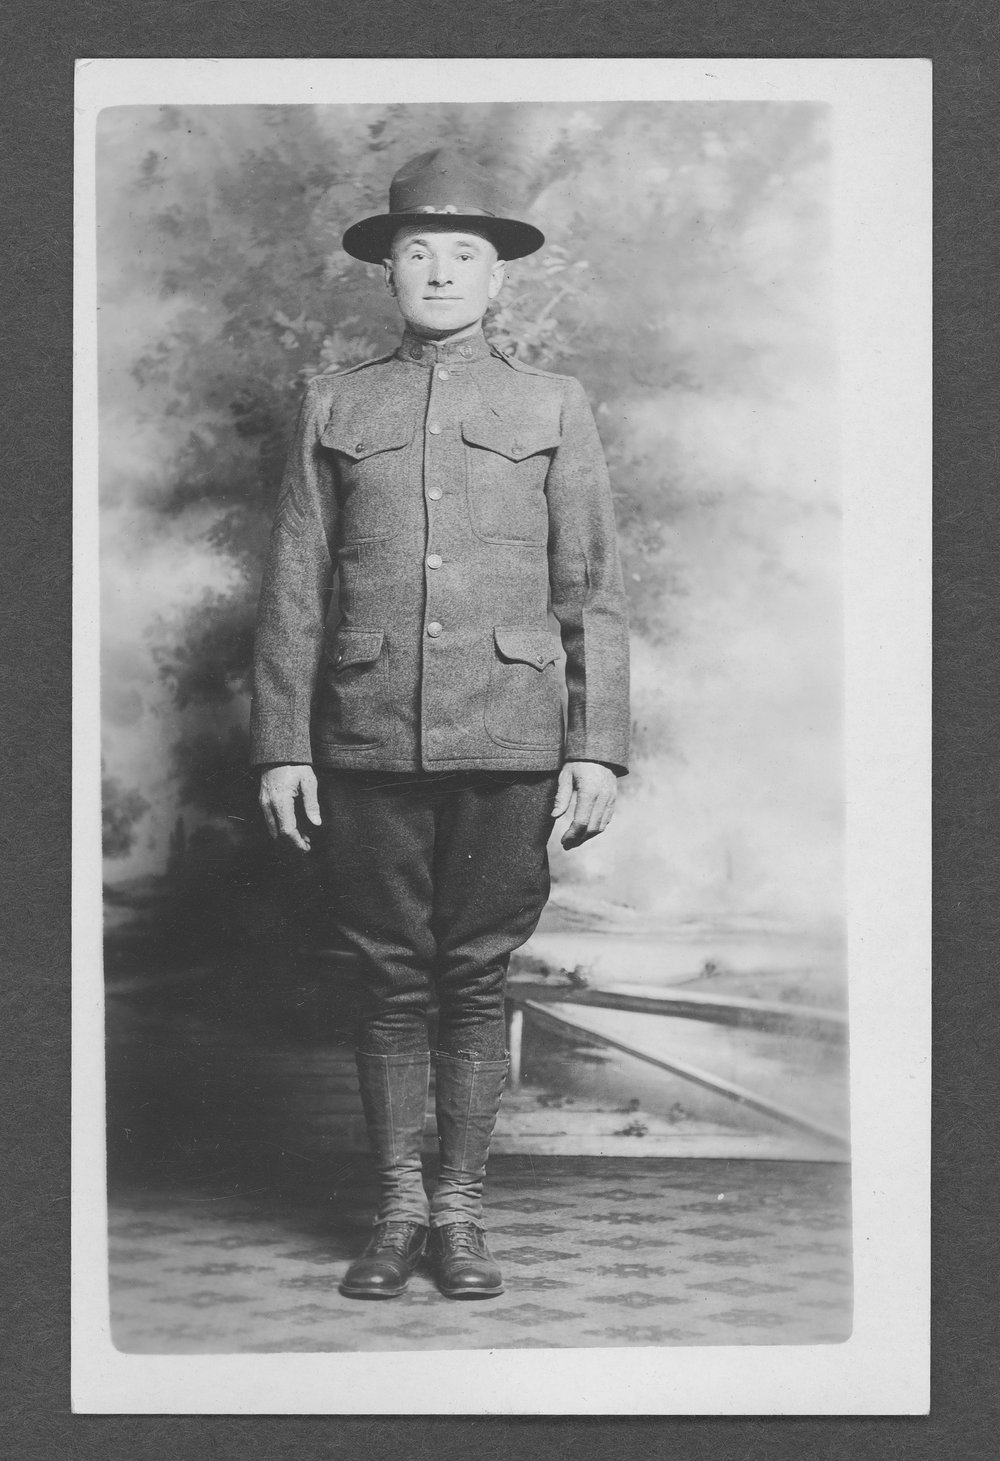 George E. Beggs, World War I soldier - 1